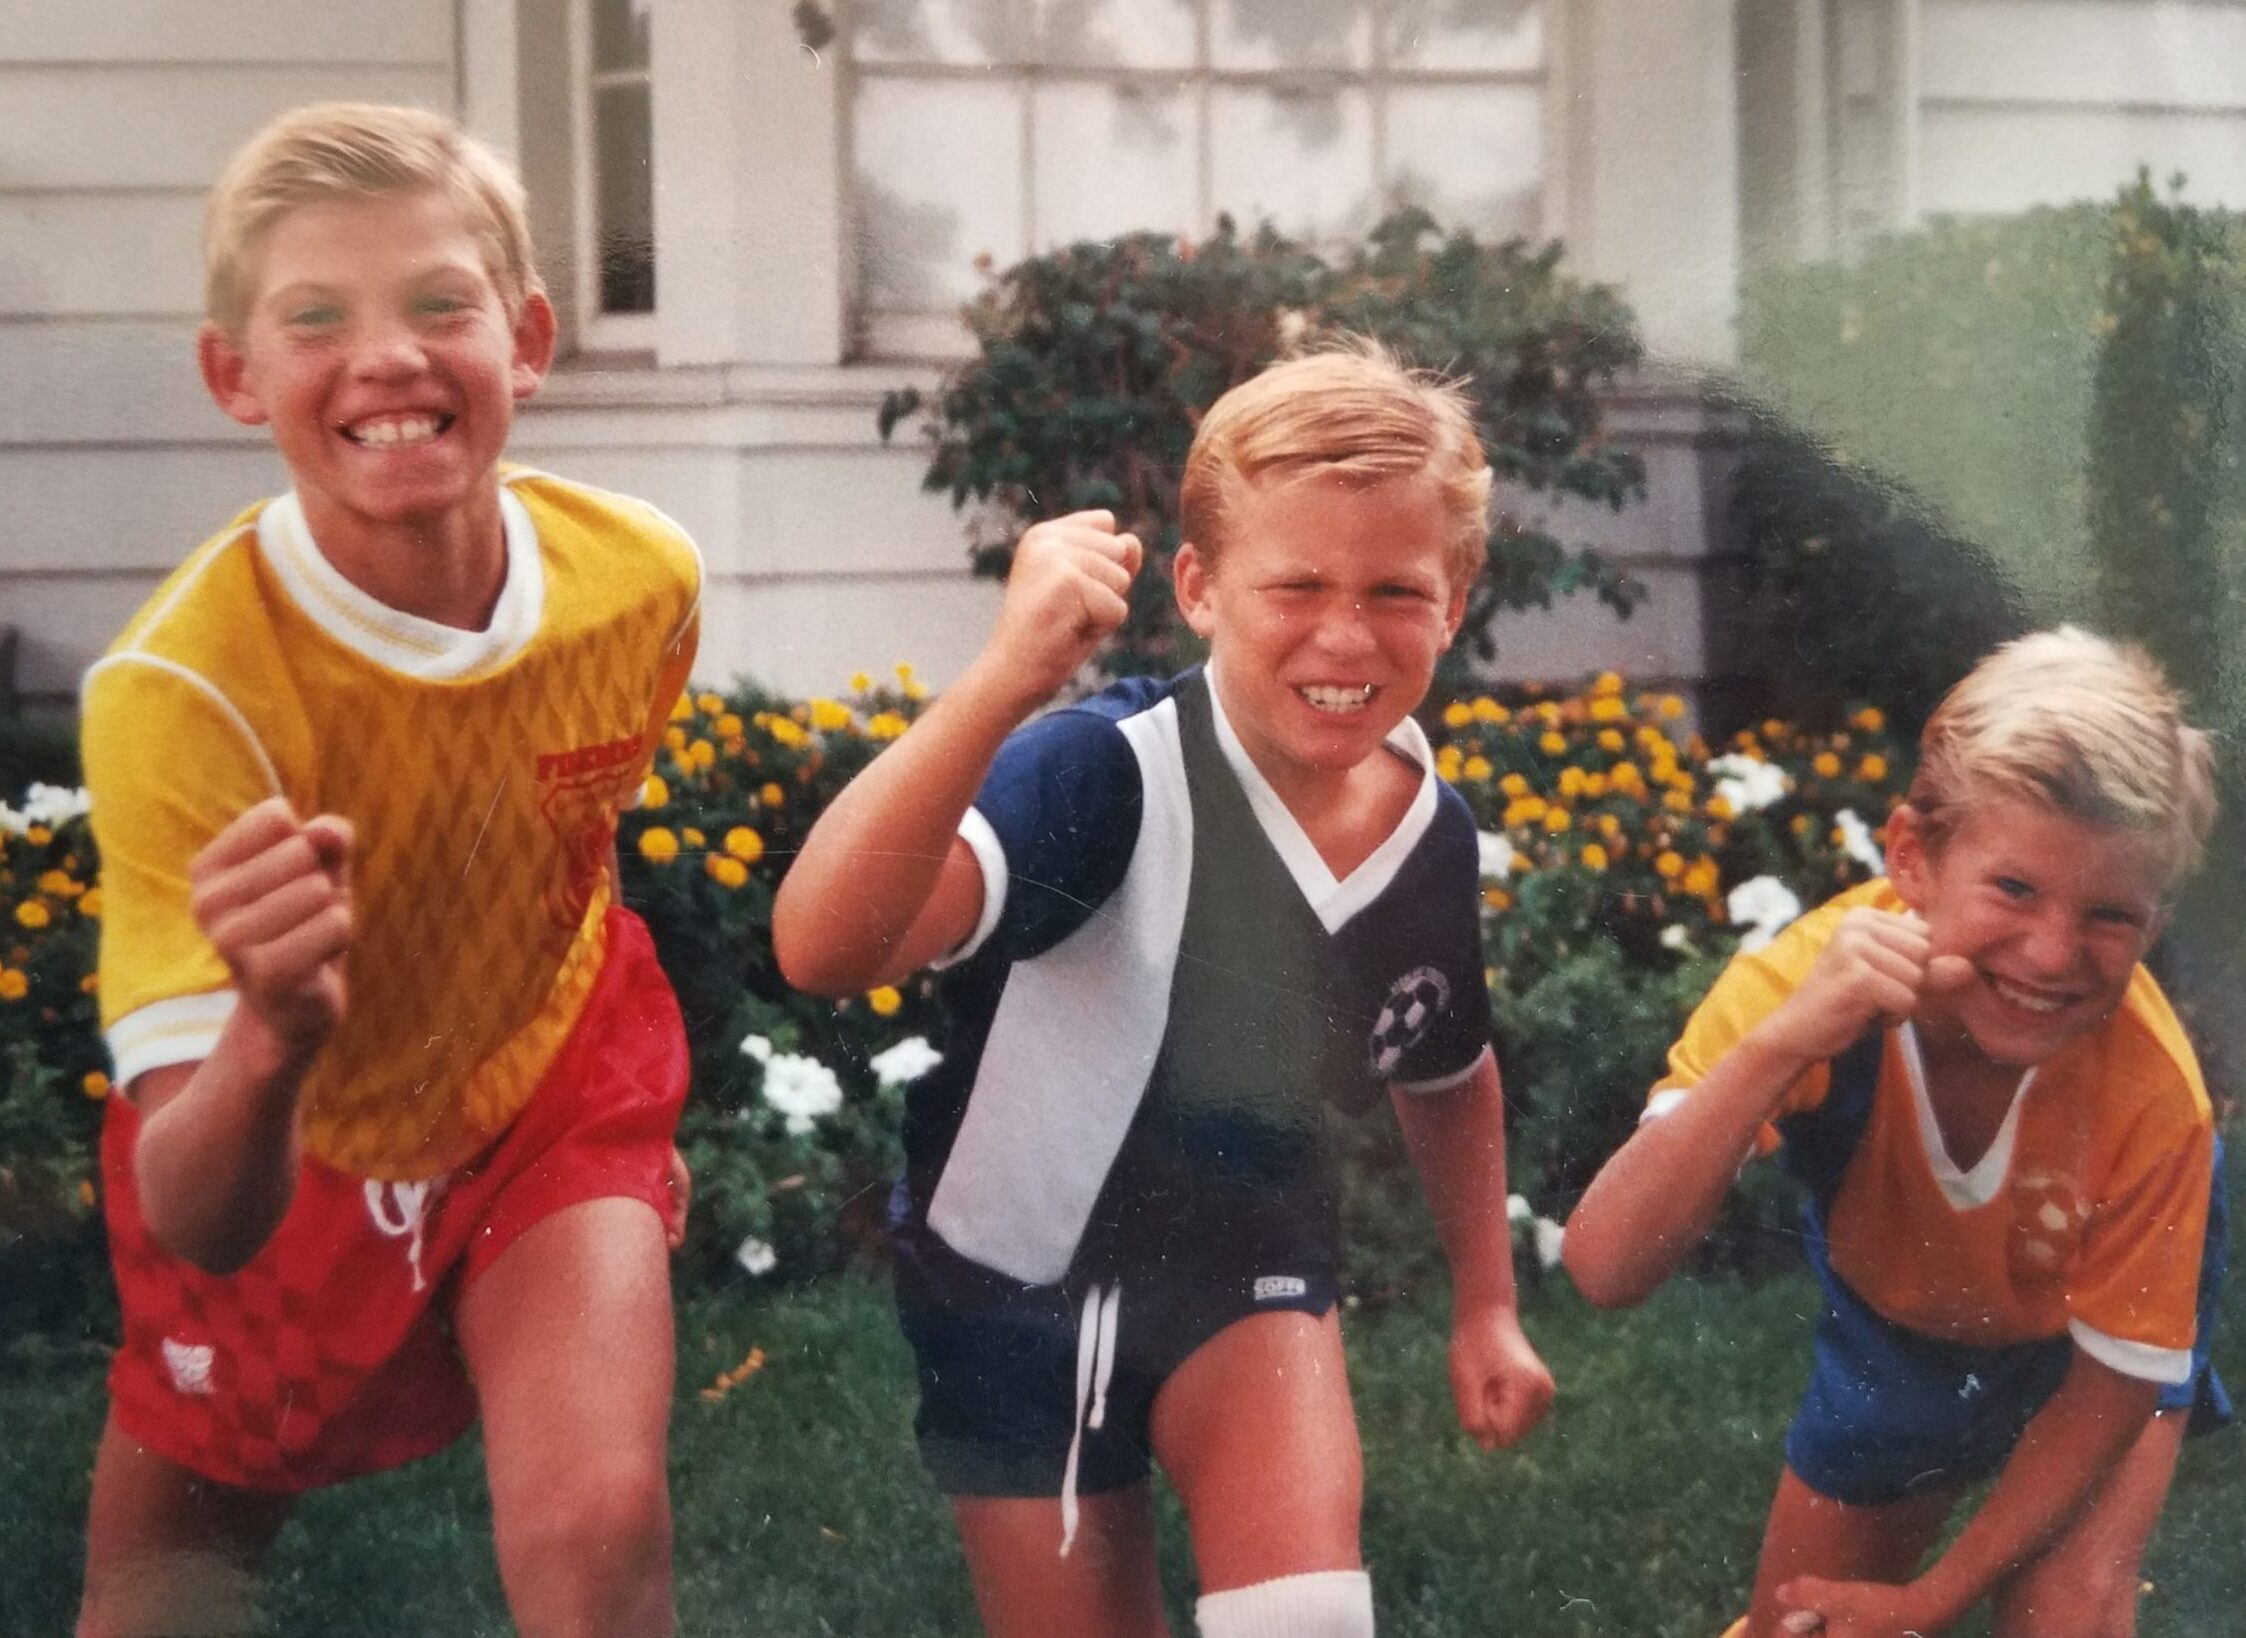 Tyler, Brannon, and Rex Patrick as kids dressed in soccer uniforms ready for action!